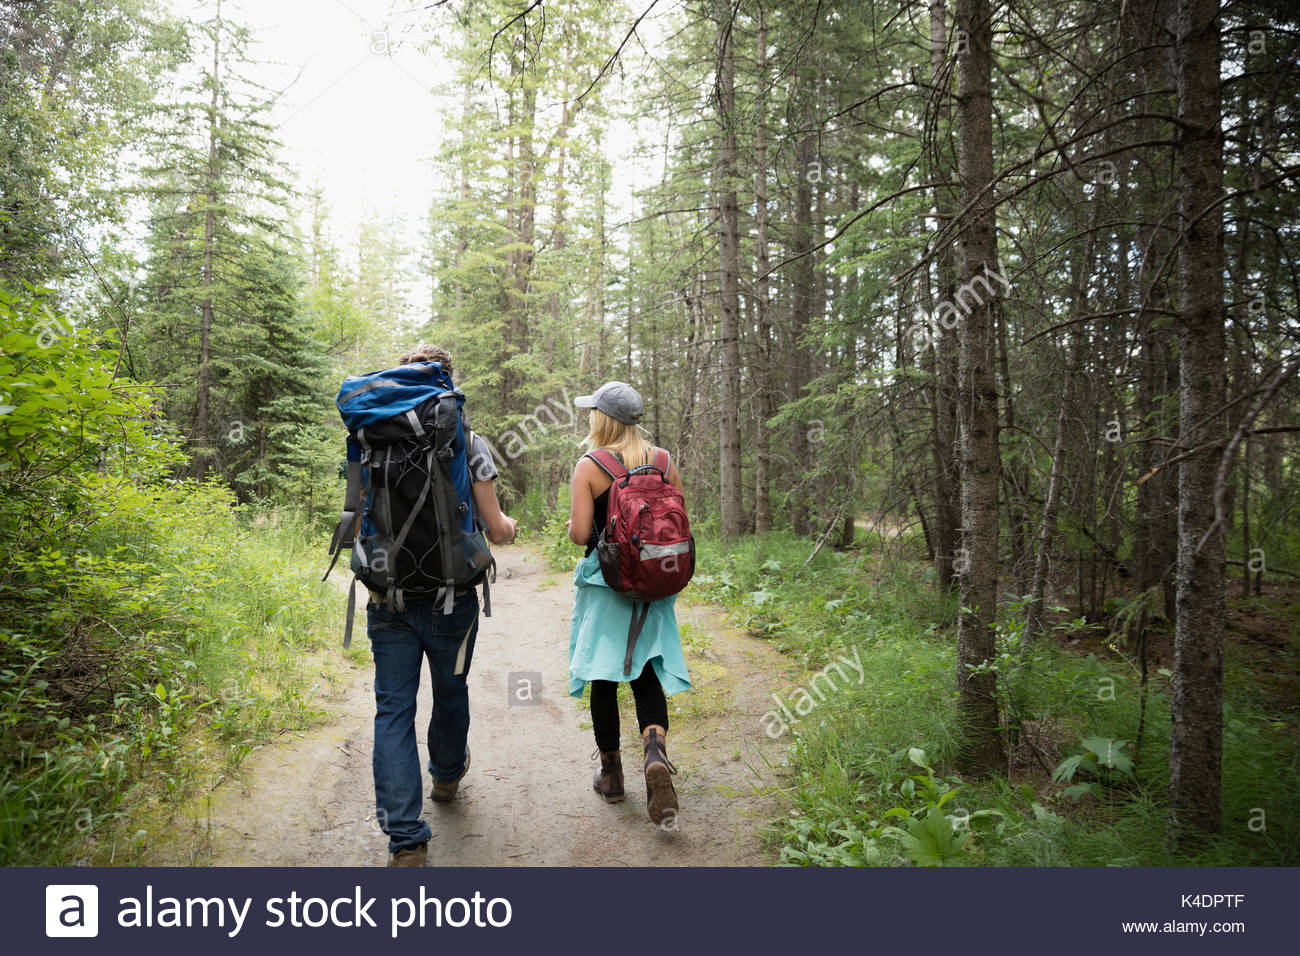 Couple with backpacks backpacking, hiking on trail in woods among trees - Stock Image